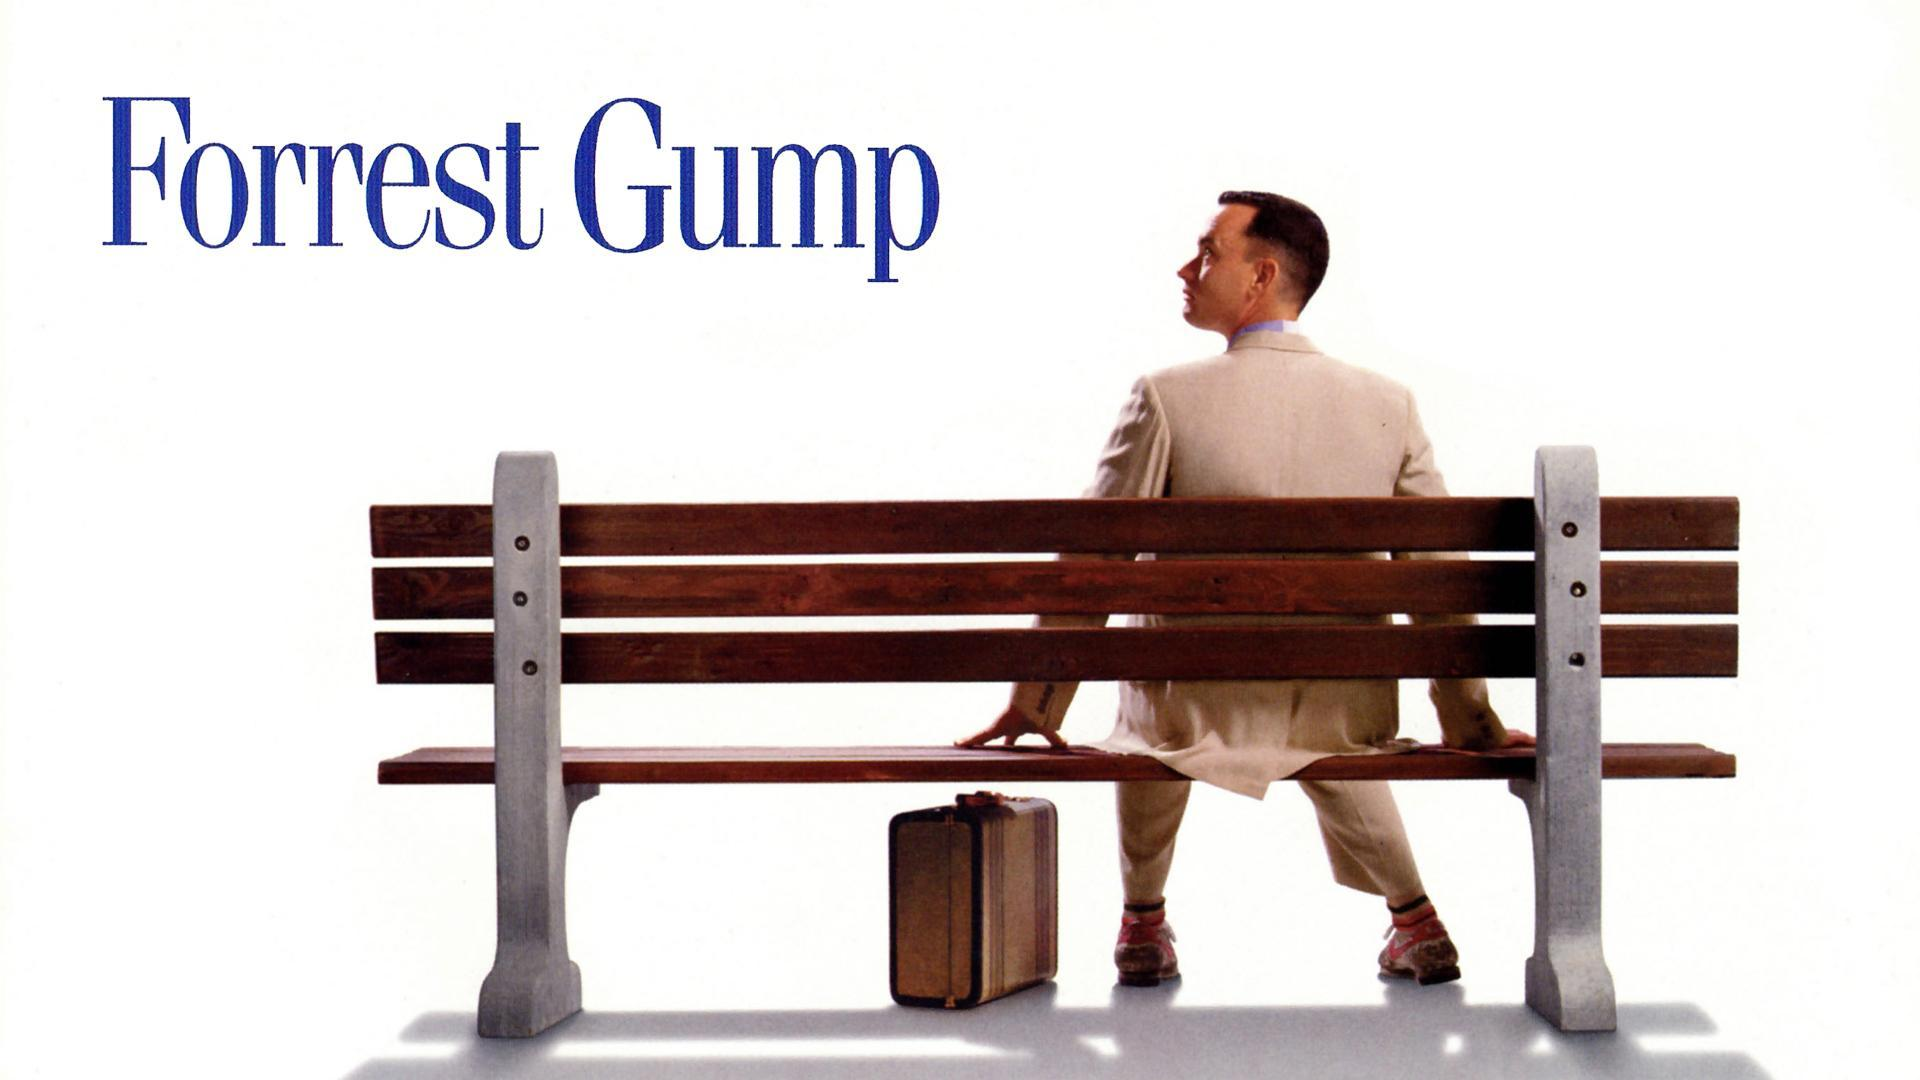 Who are you from Forrest Gump?